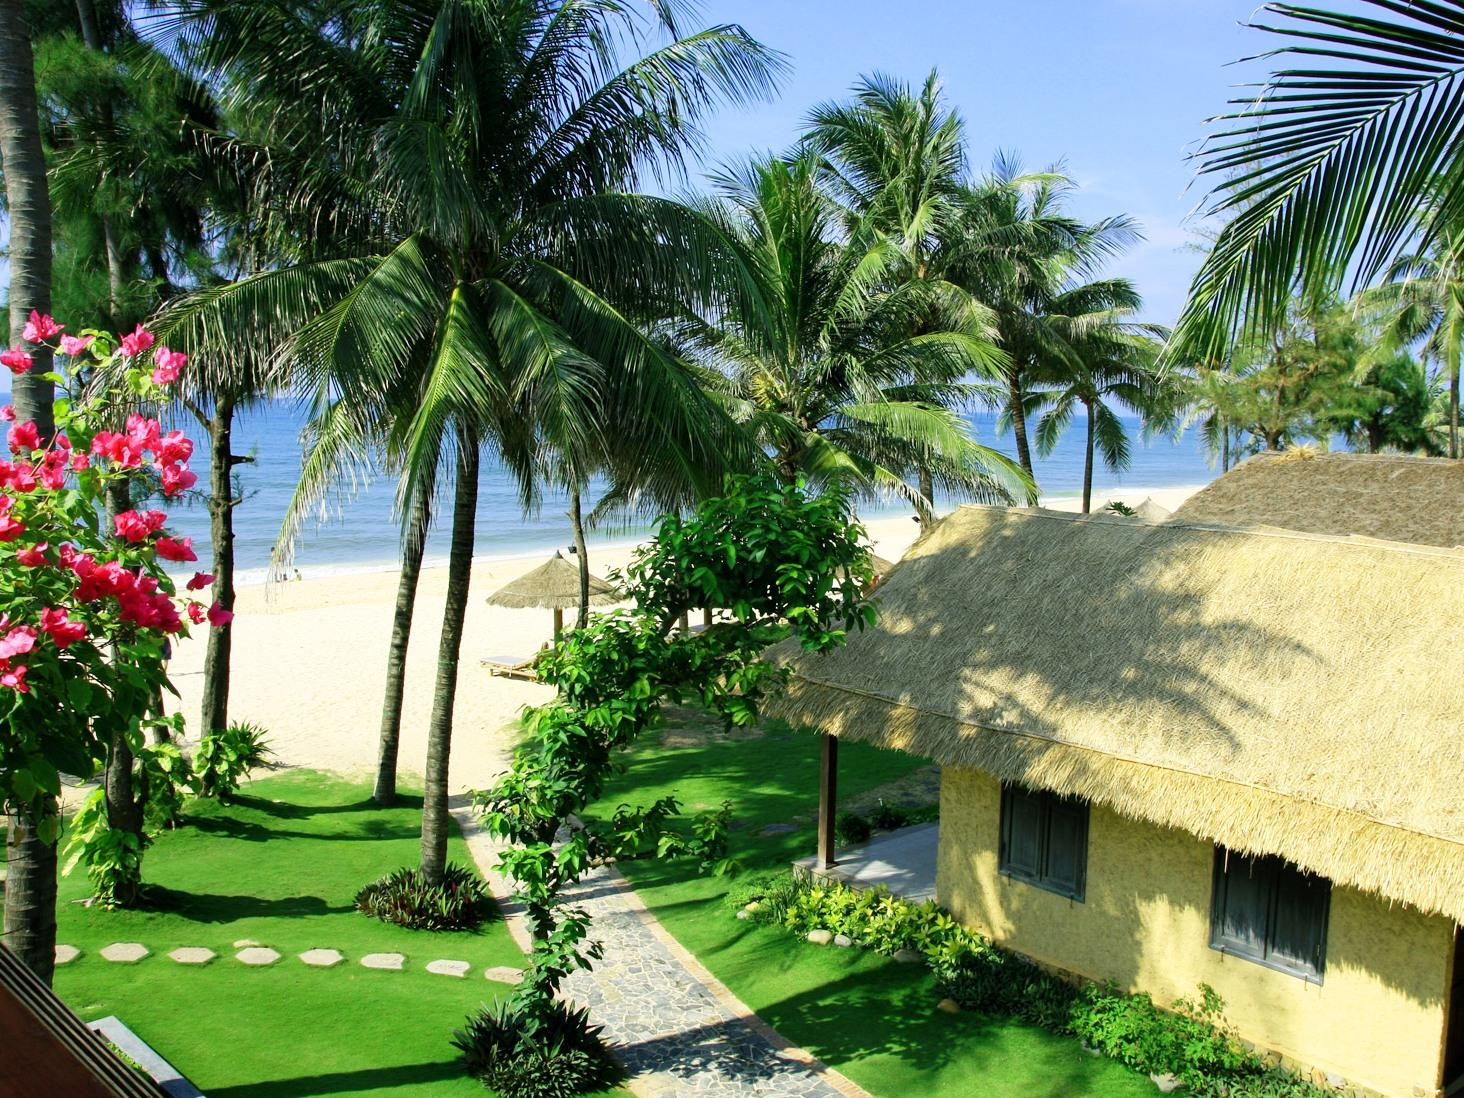 Bamboo Village Beach Resort Phan Thiet